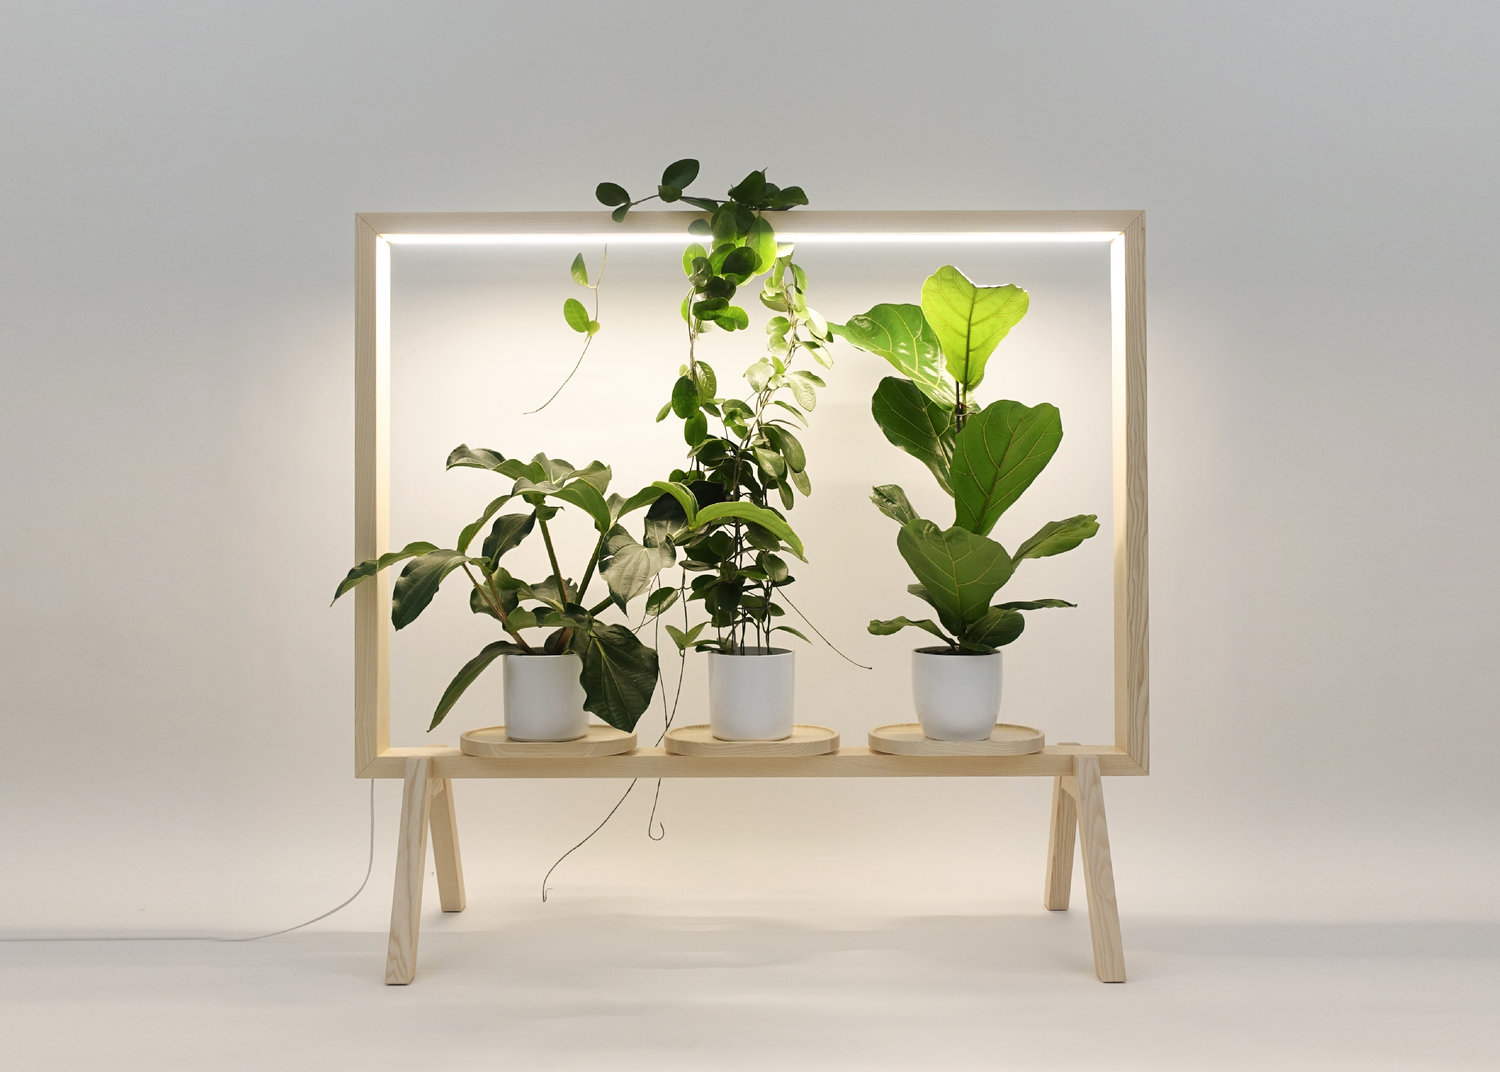 Limbus+GreenFrame_Glimakra_of_Sweden_Design_Johan_Kauppi_2018_Studio_Photo,+Kauppi+&+Kauppi.jpg